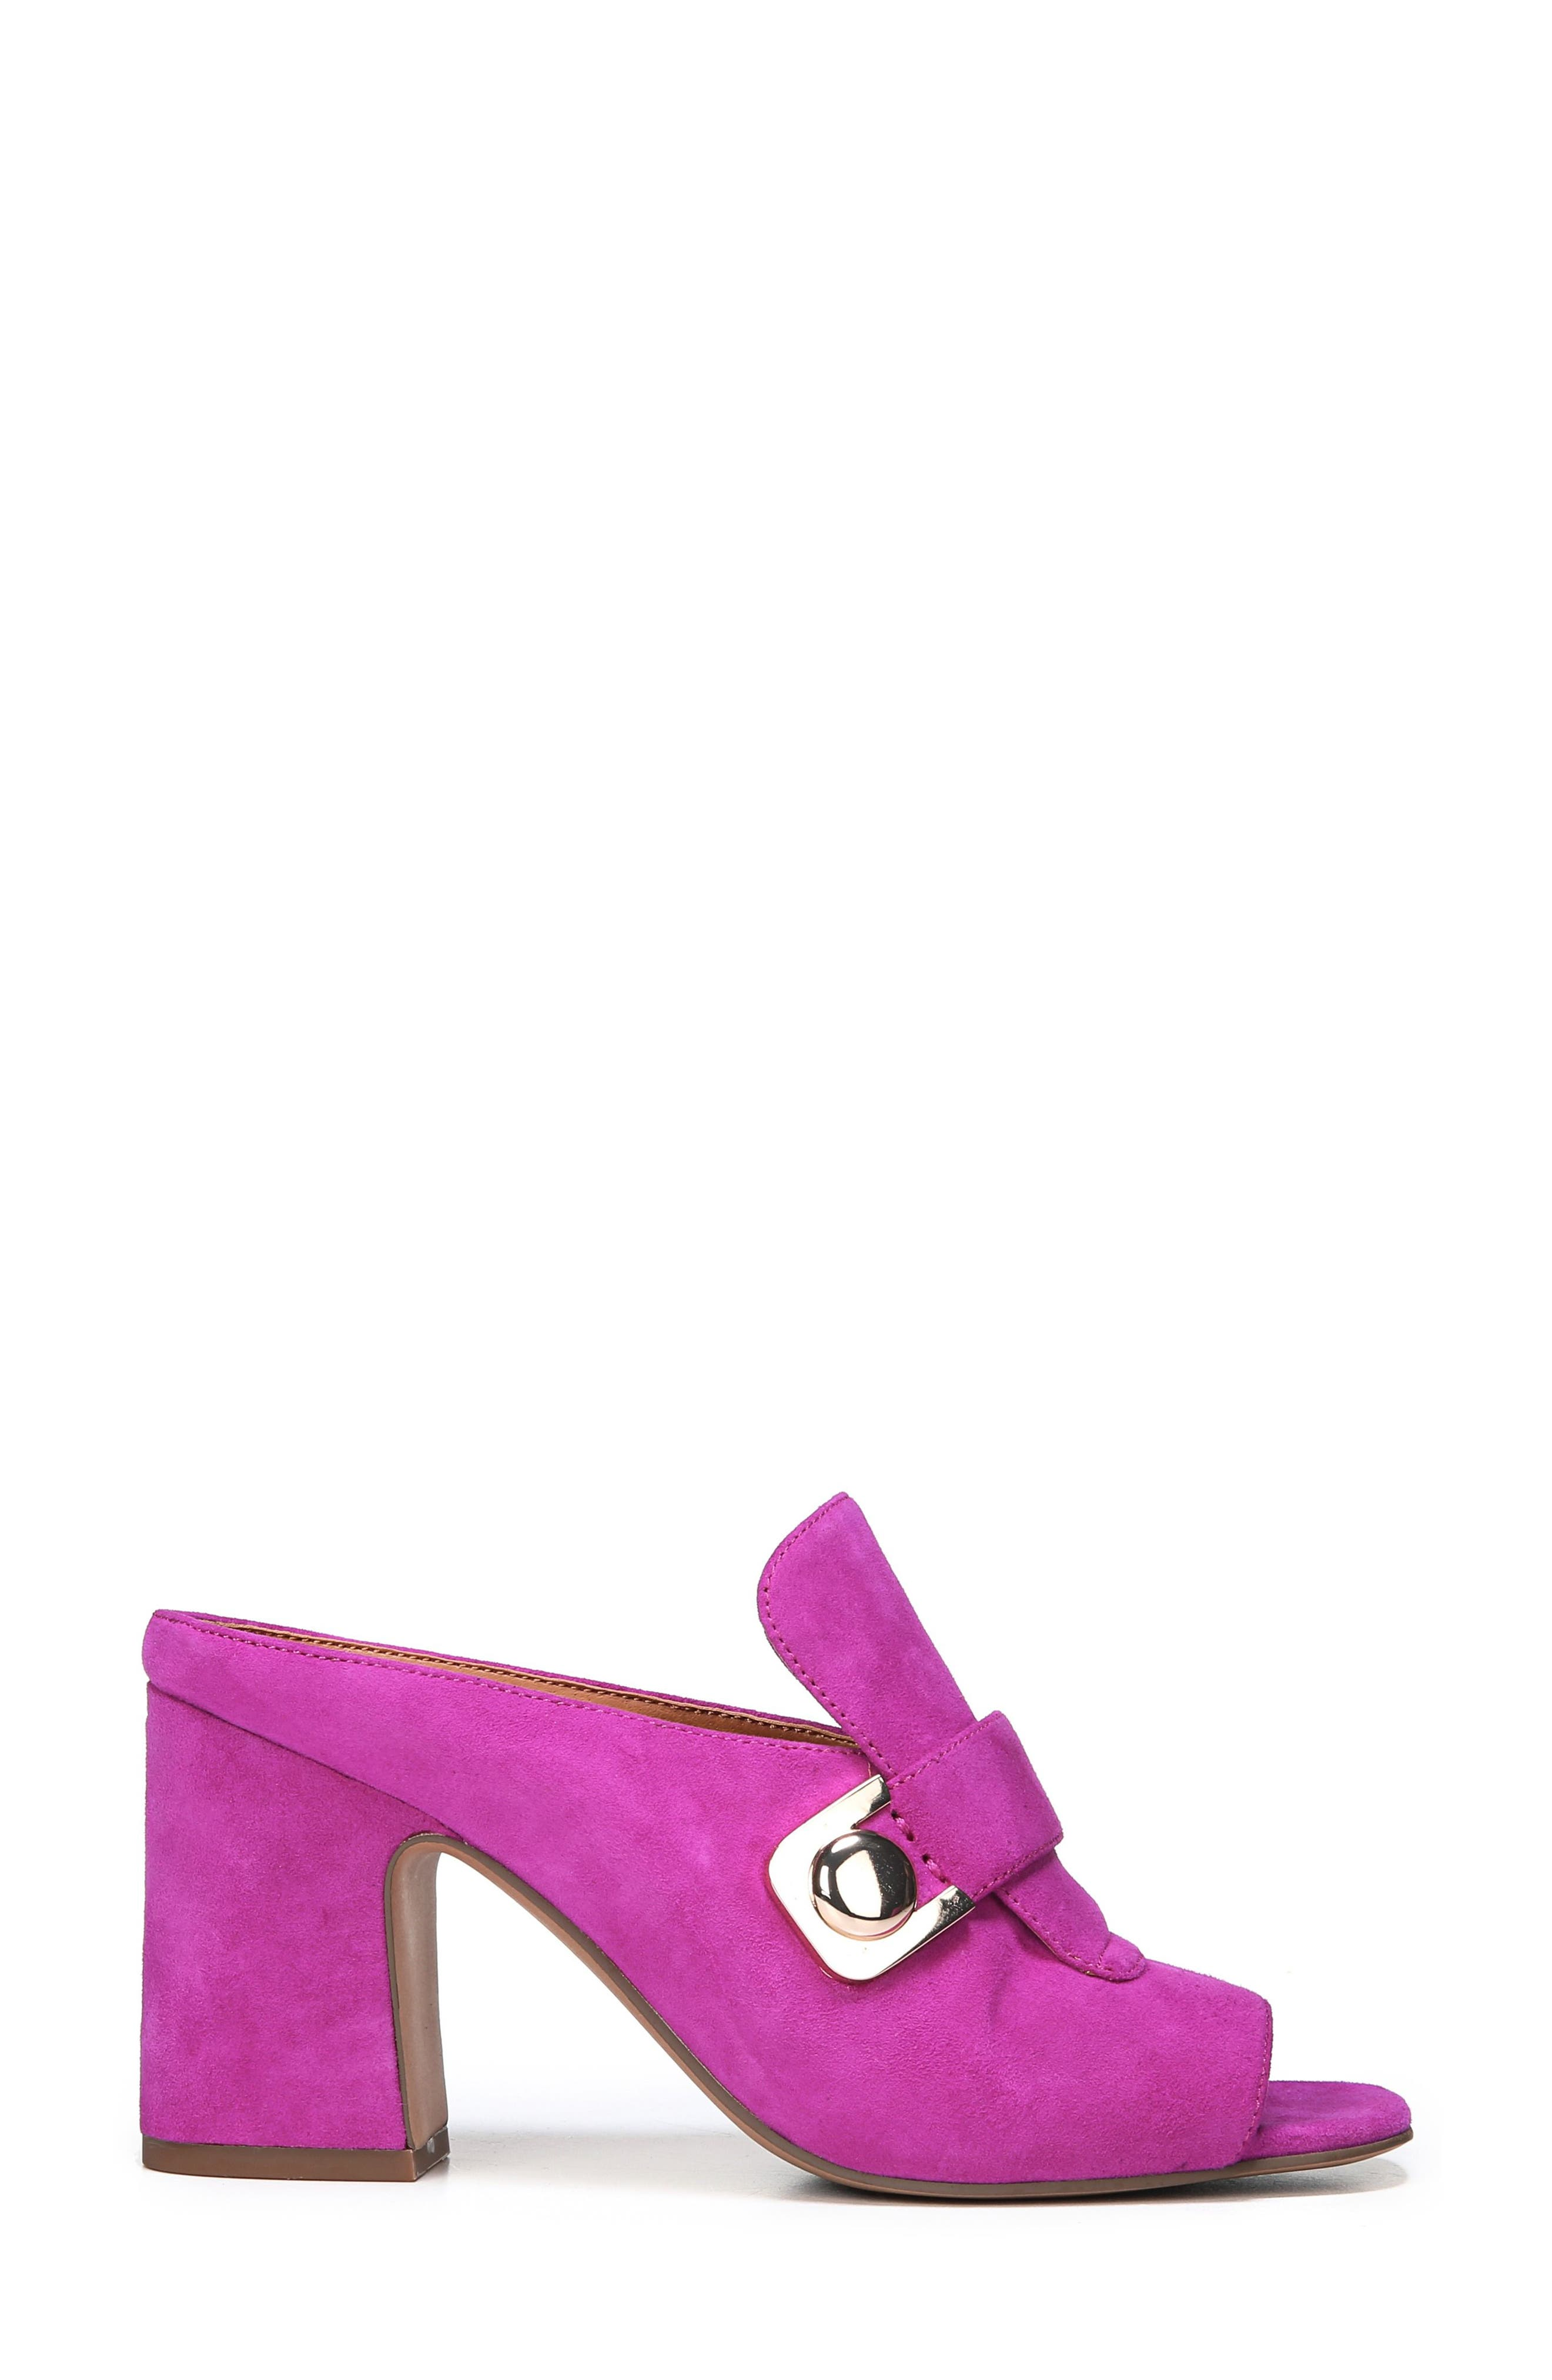 Rosalie Block Heel Sandal,                             Alternate thumbnail 3, color,                             Wild Violet Suede